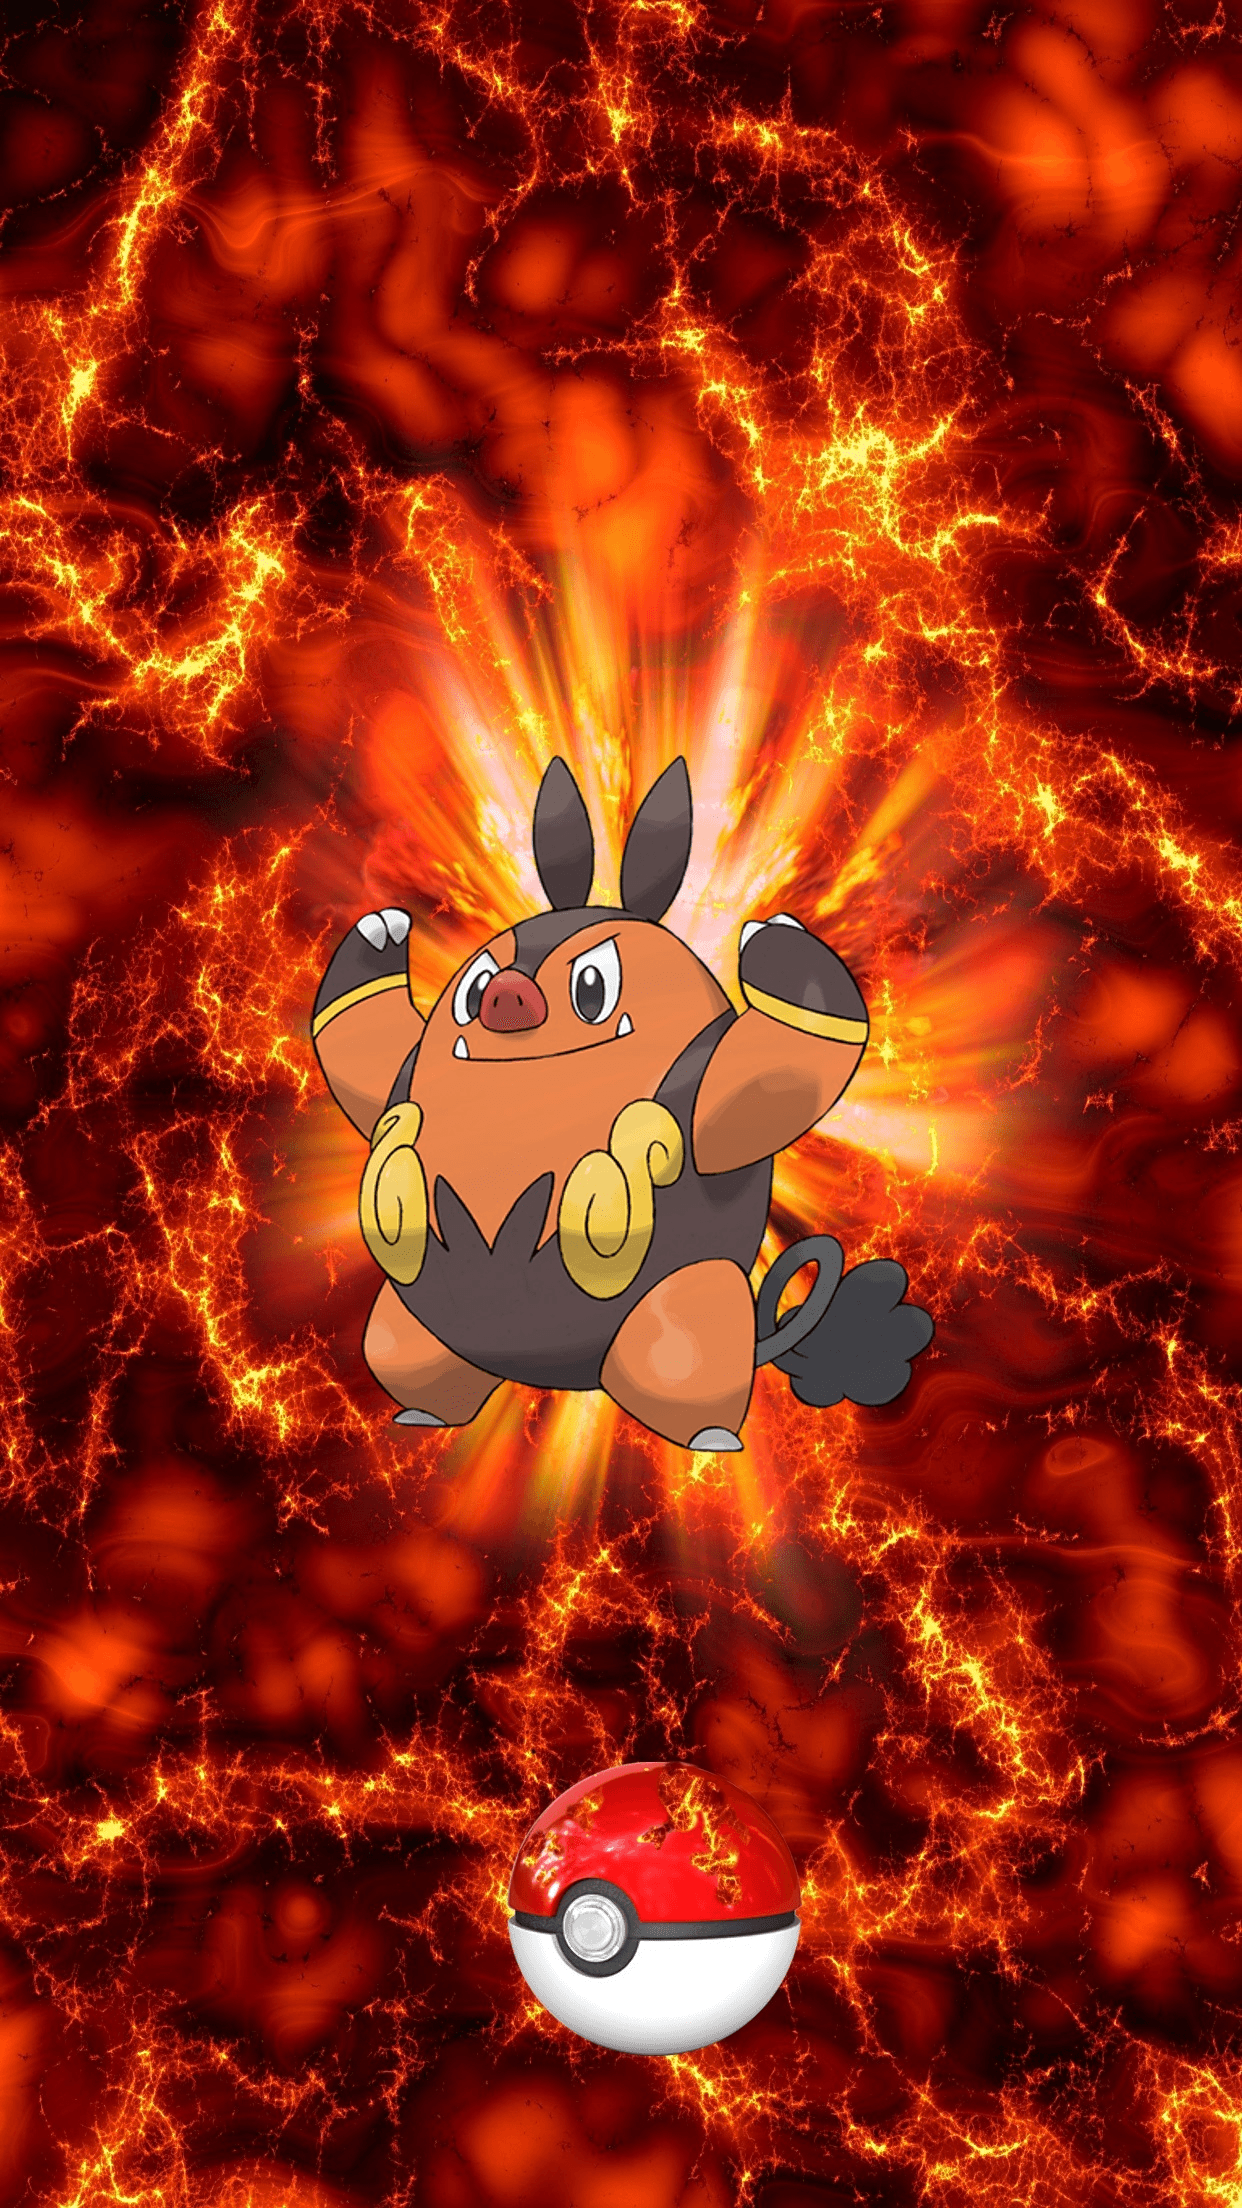 499 Fire Pokeball Pignite Chaoboo 68 Tepig | Wallpaper